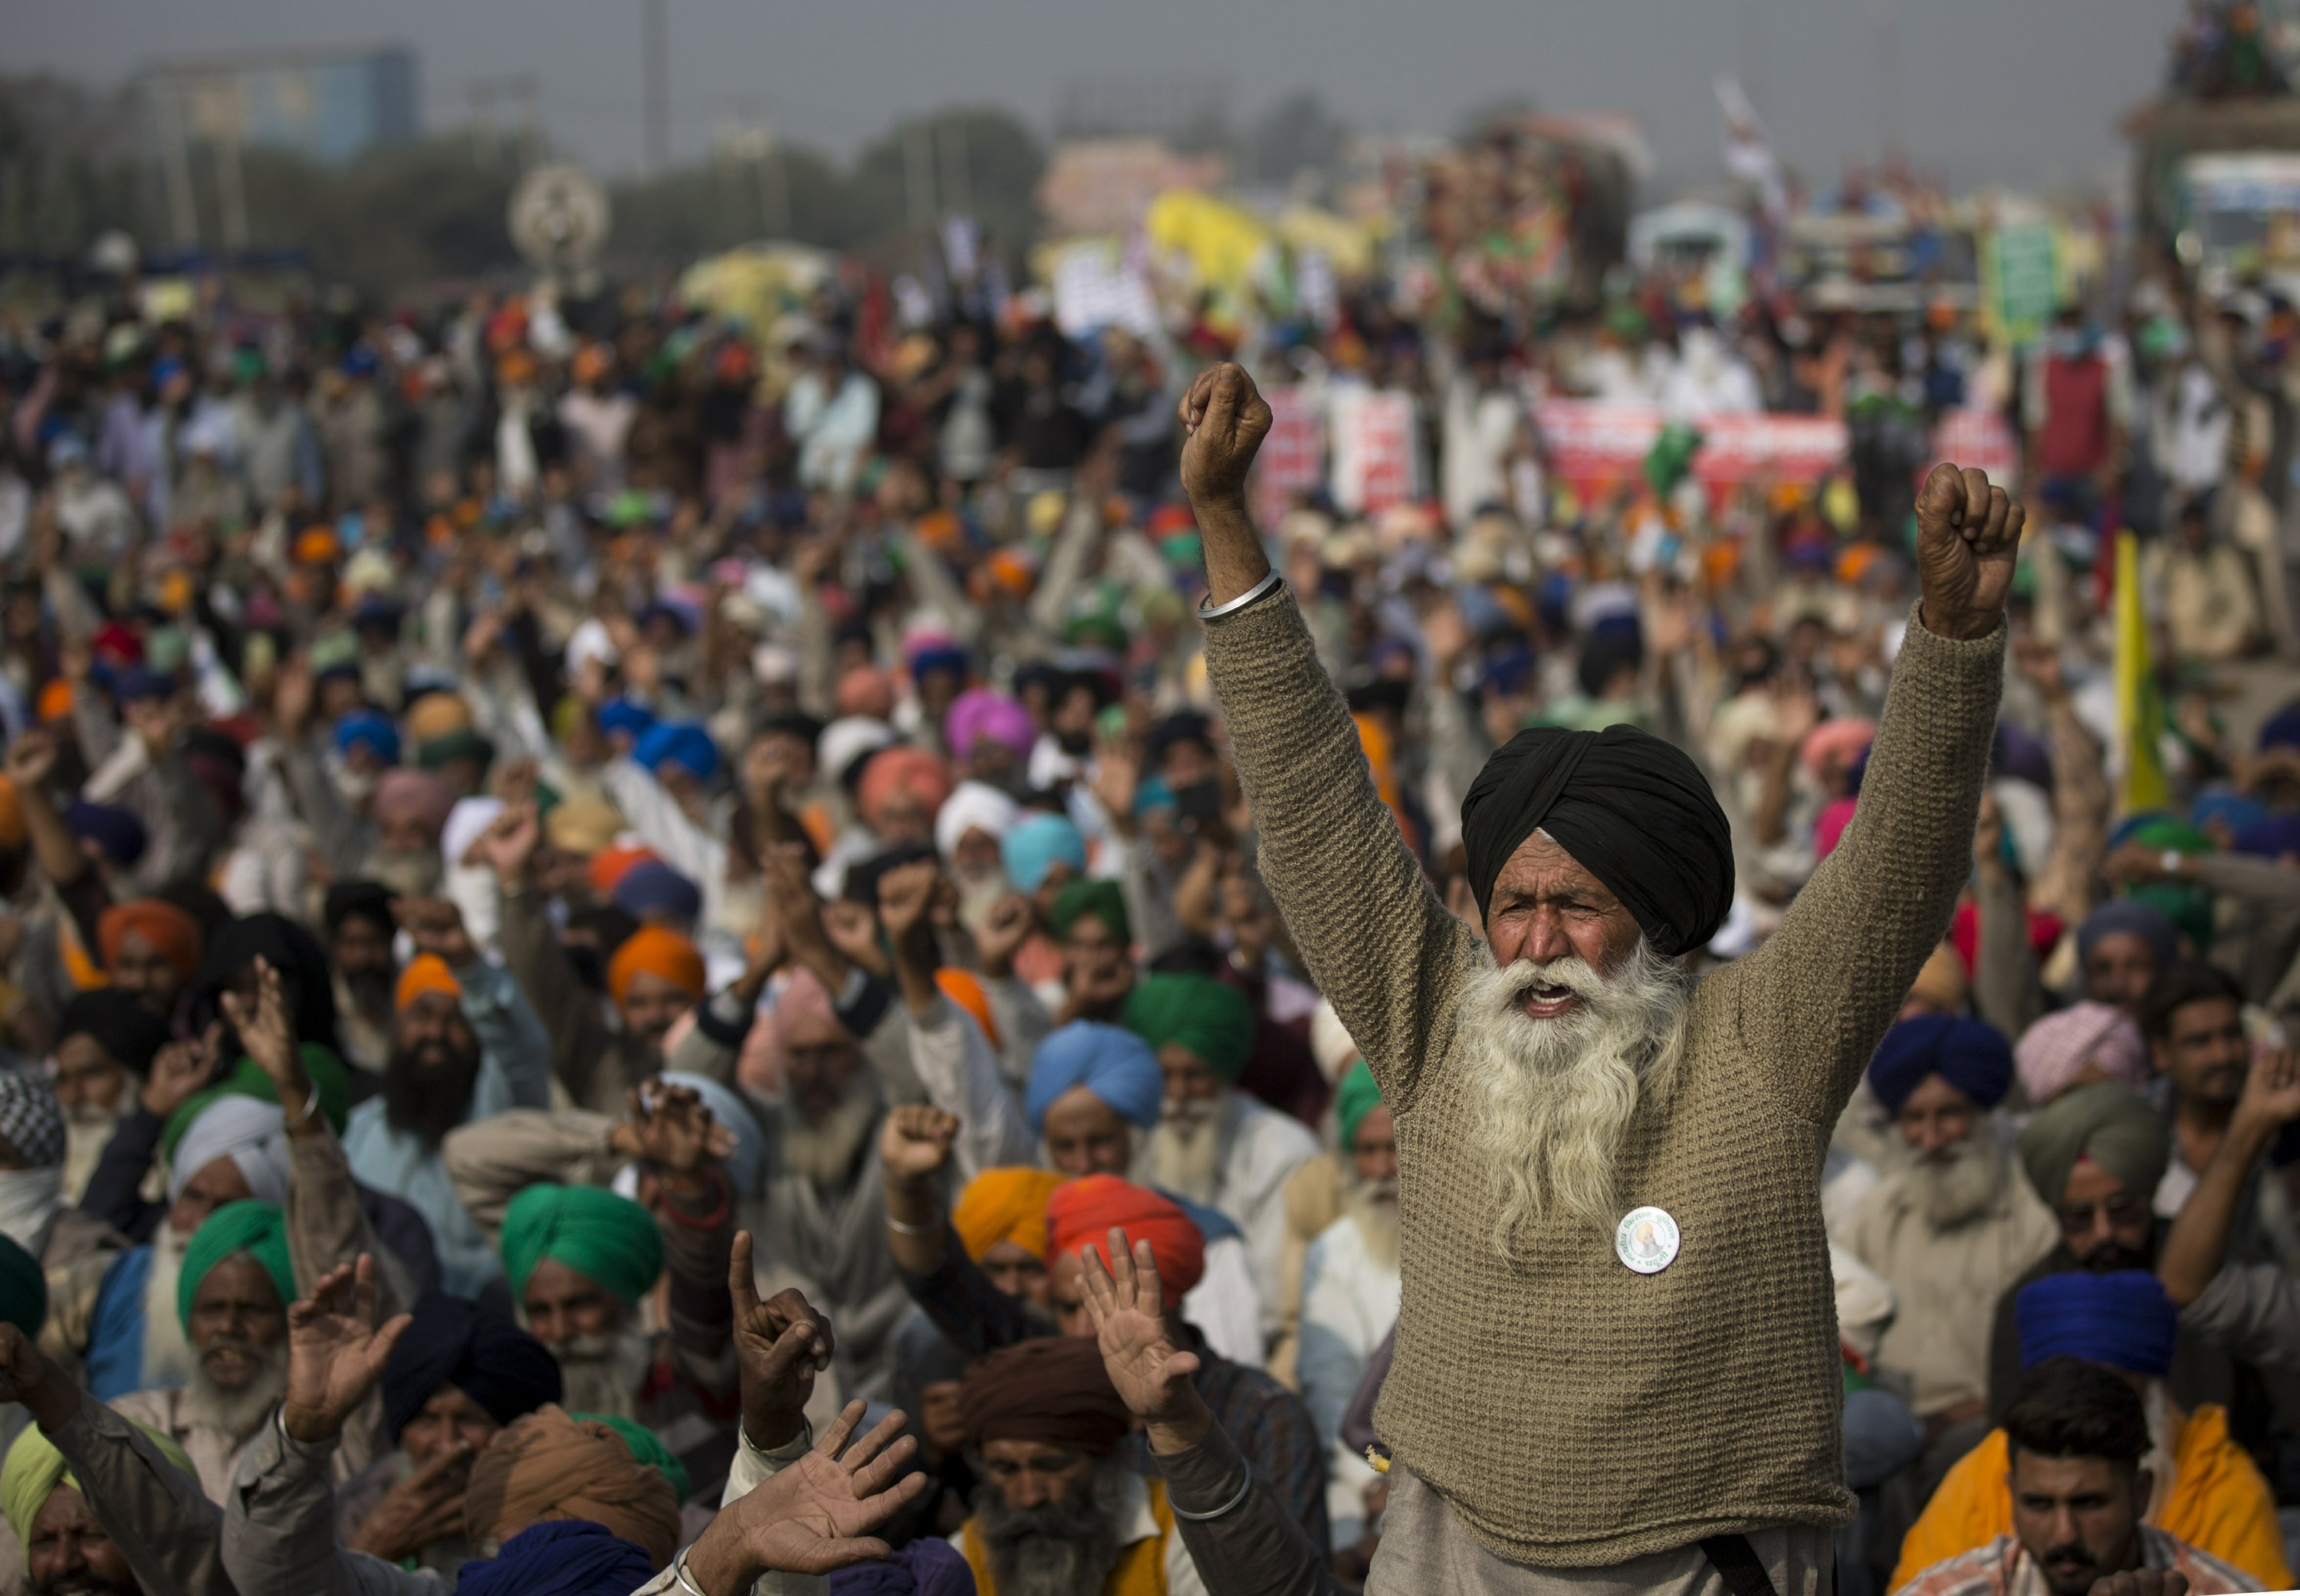 India's winter of discontent: Farmers rise up against Modi – Associated Press